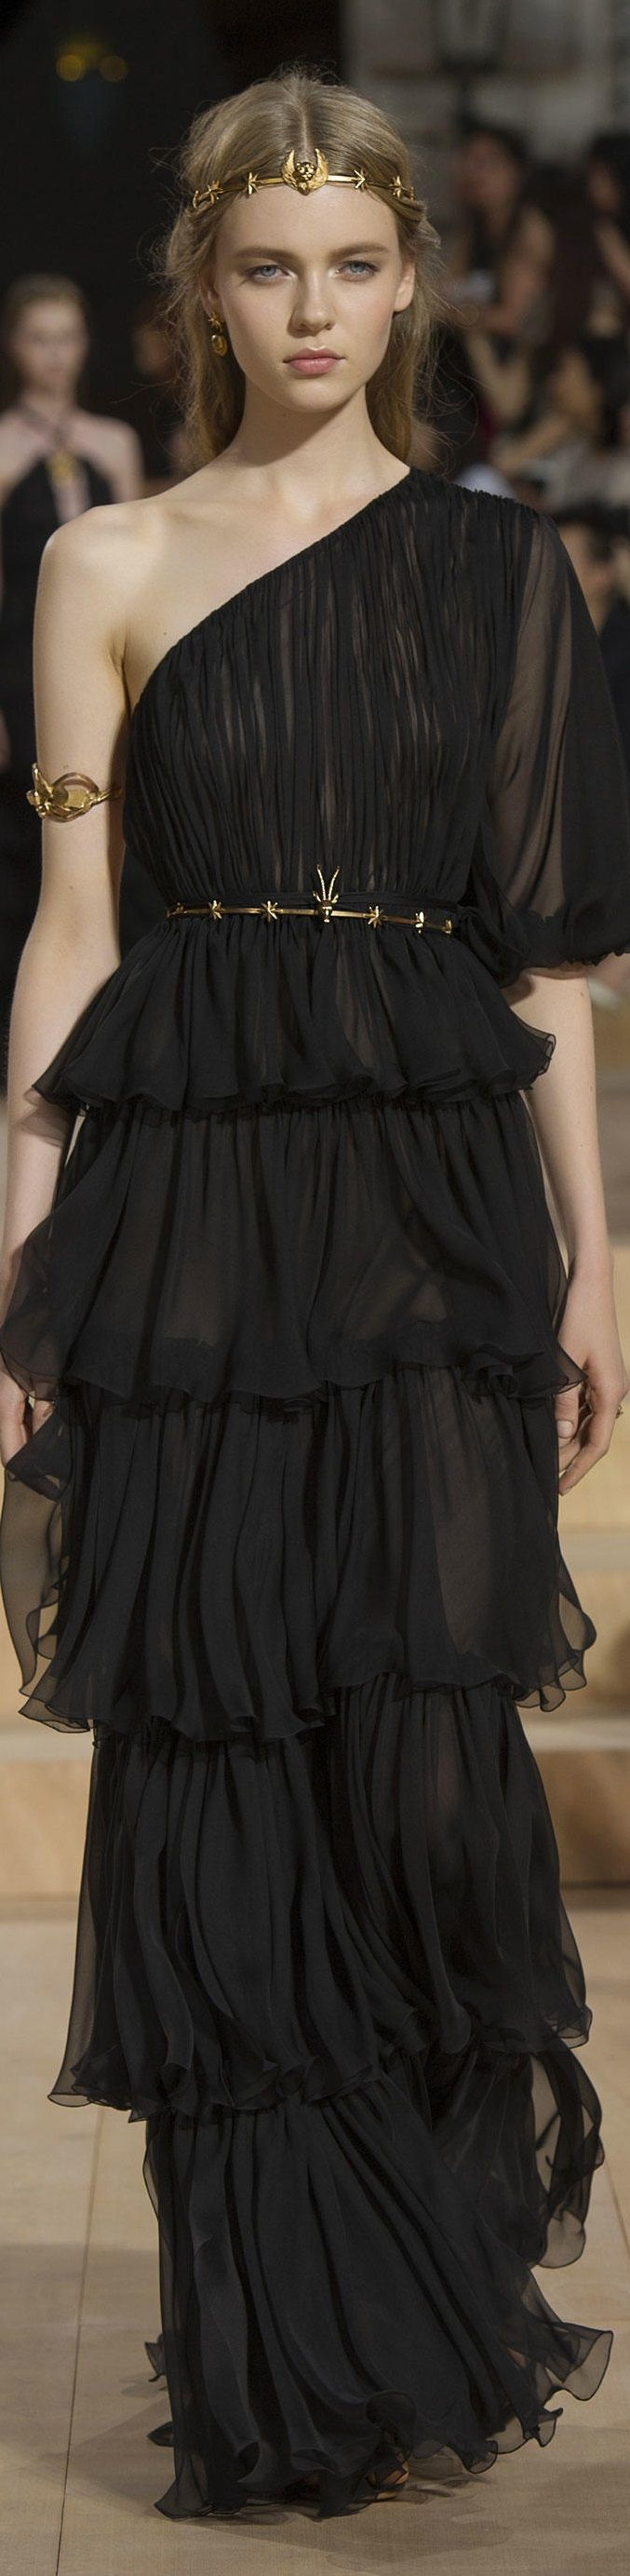 Valentino Fall/Winter 2015. What a stunning sheer black layered ruffled one-shoulder gown. I would totally wear this.